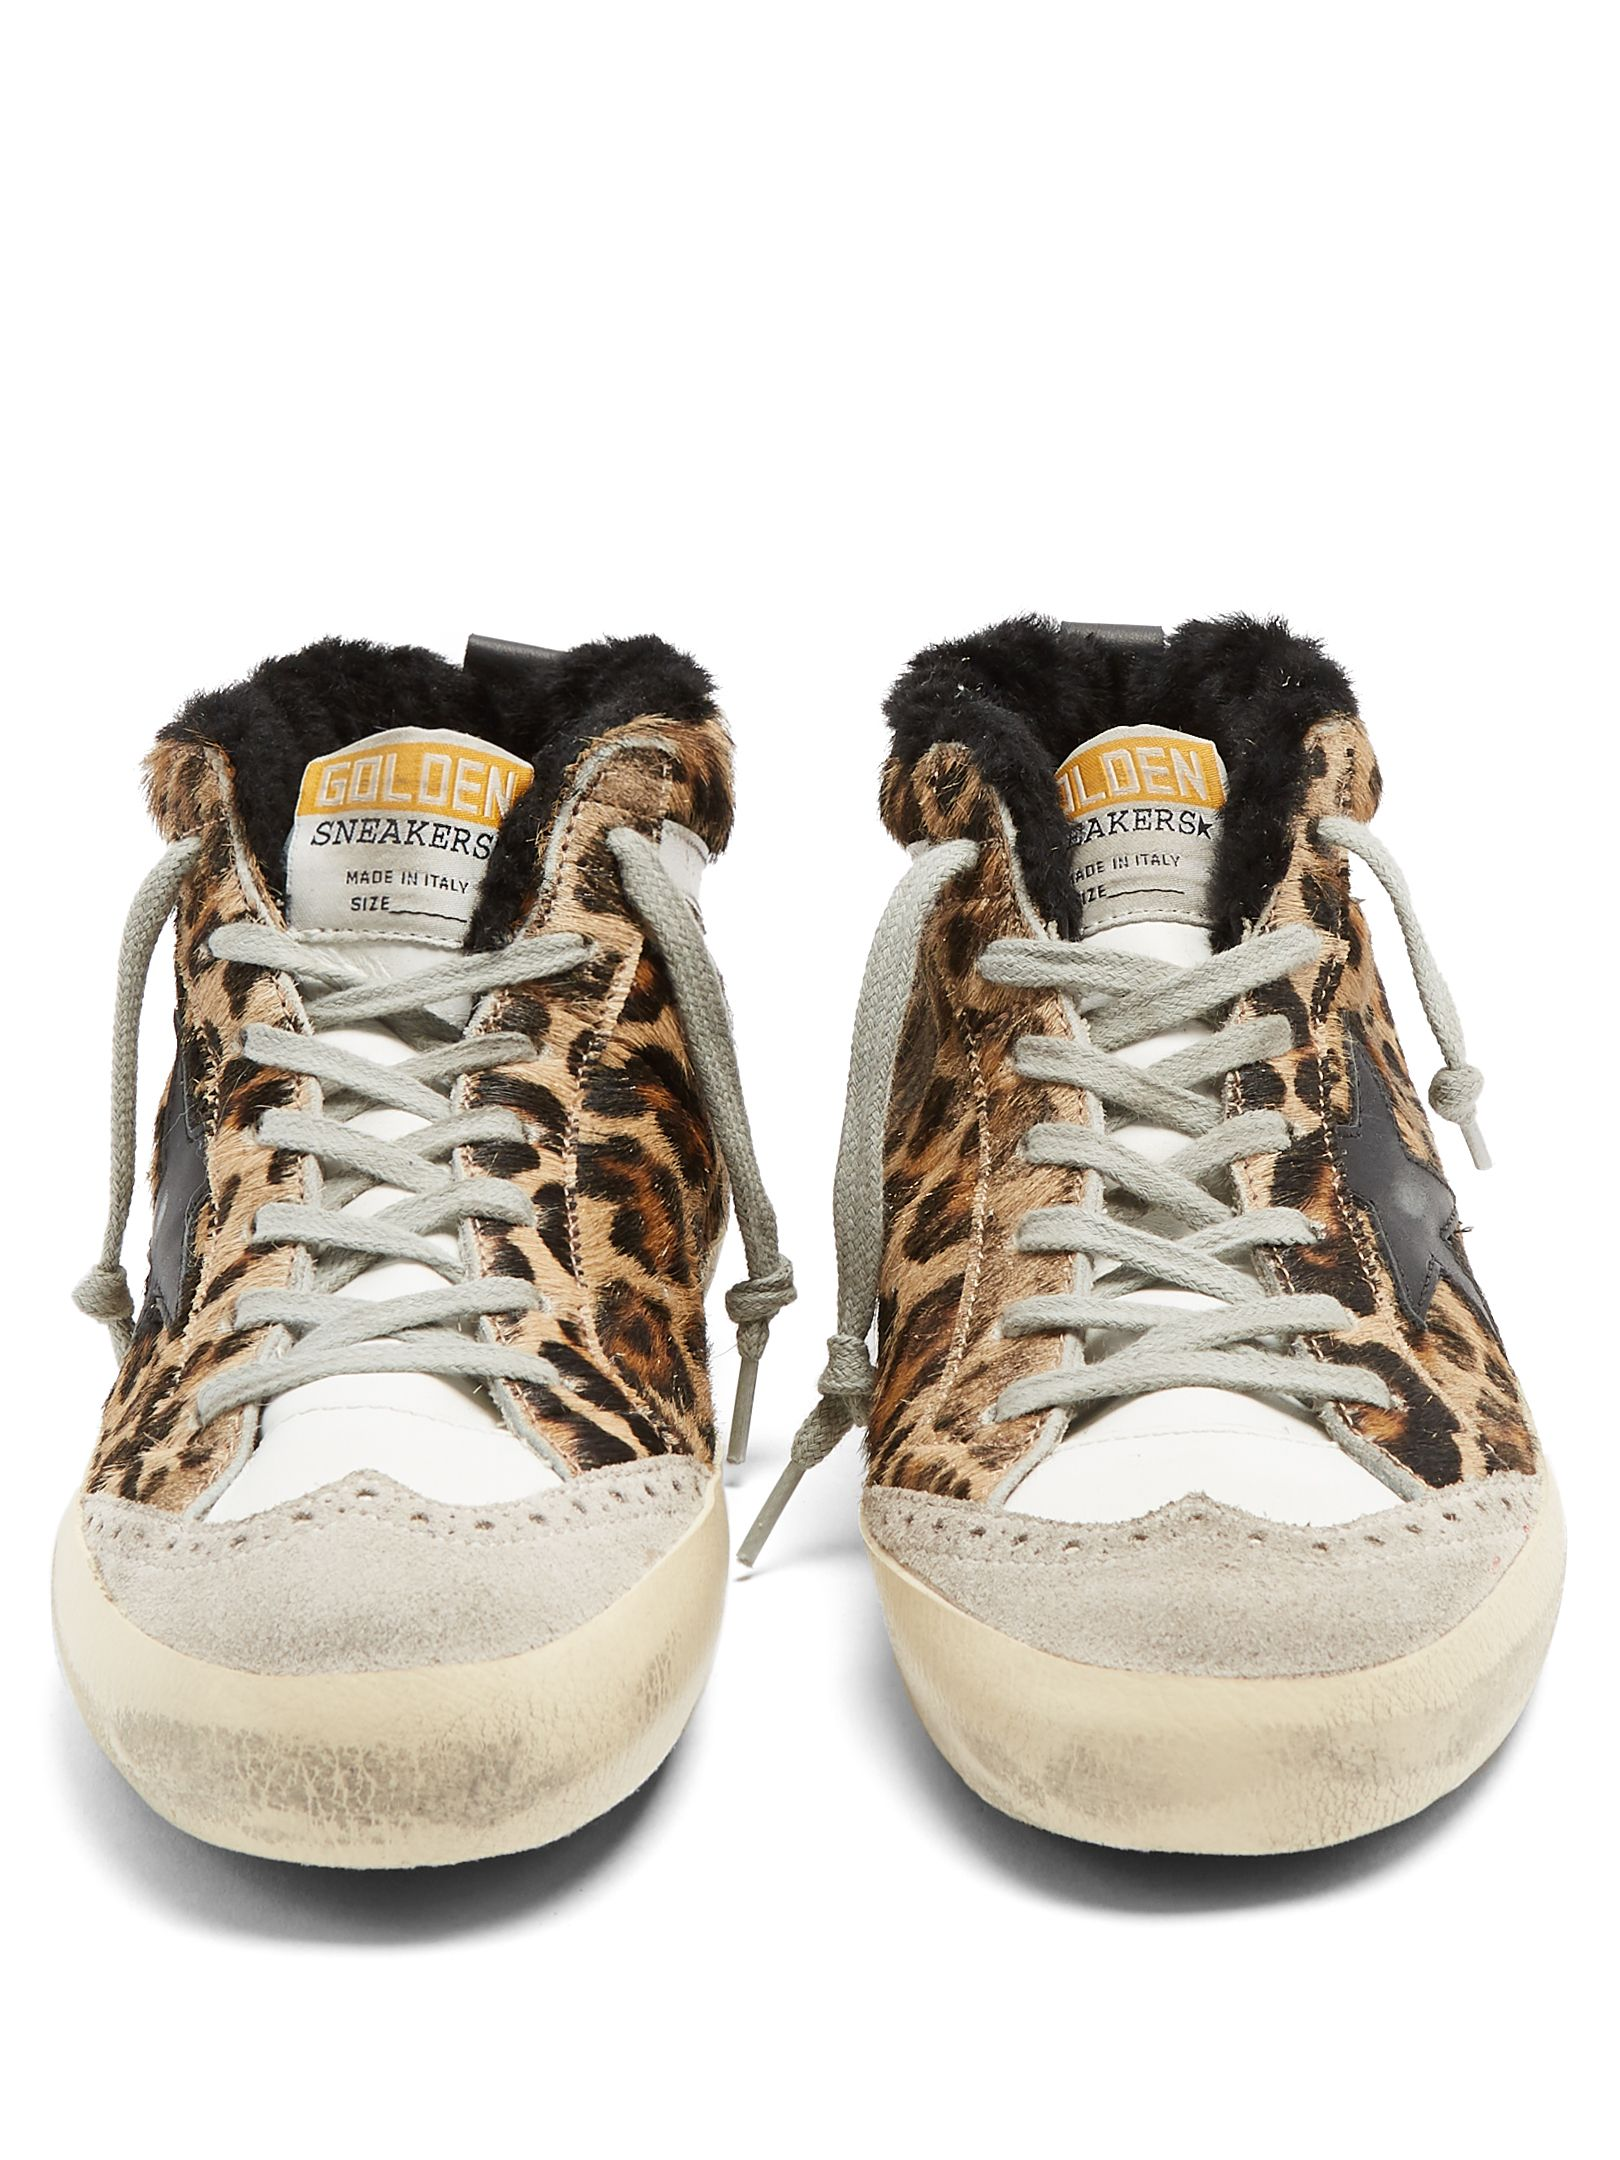 478ff43c8a88d Golden Goose Deluxe Brand Mid Star leopard-print shearling-lined trainers  at MATCHESFASHION.